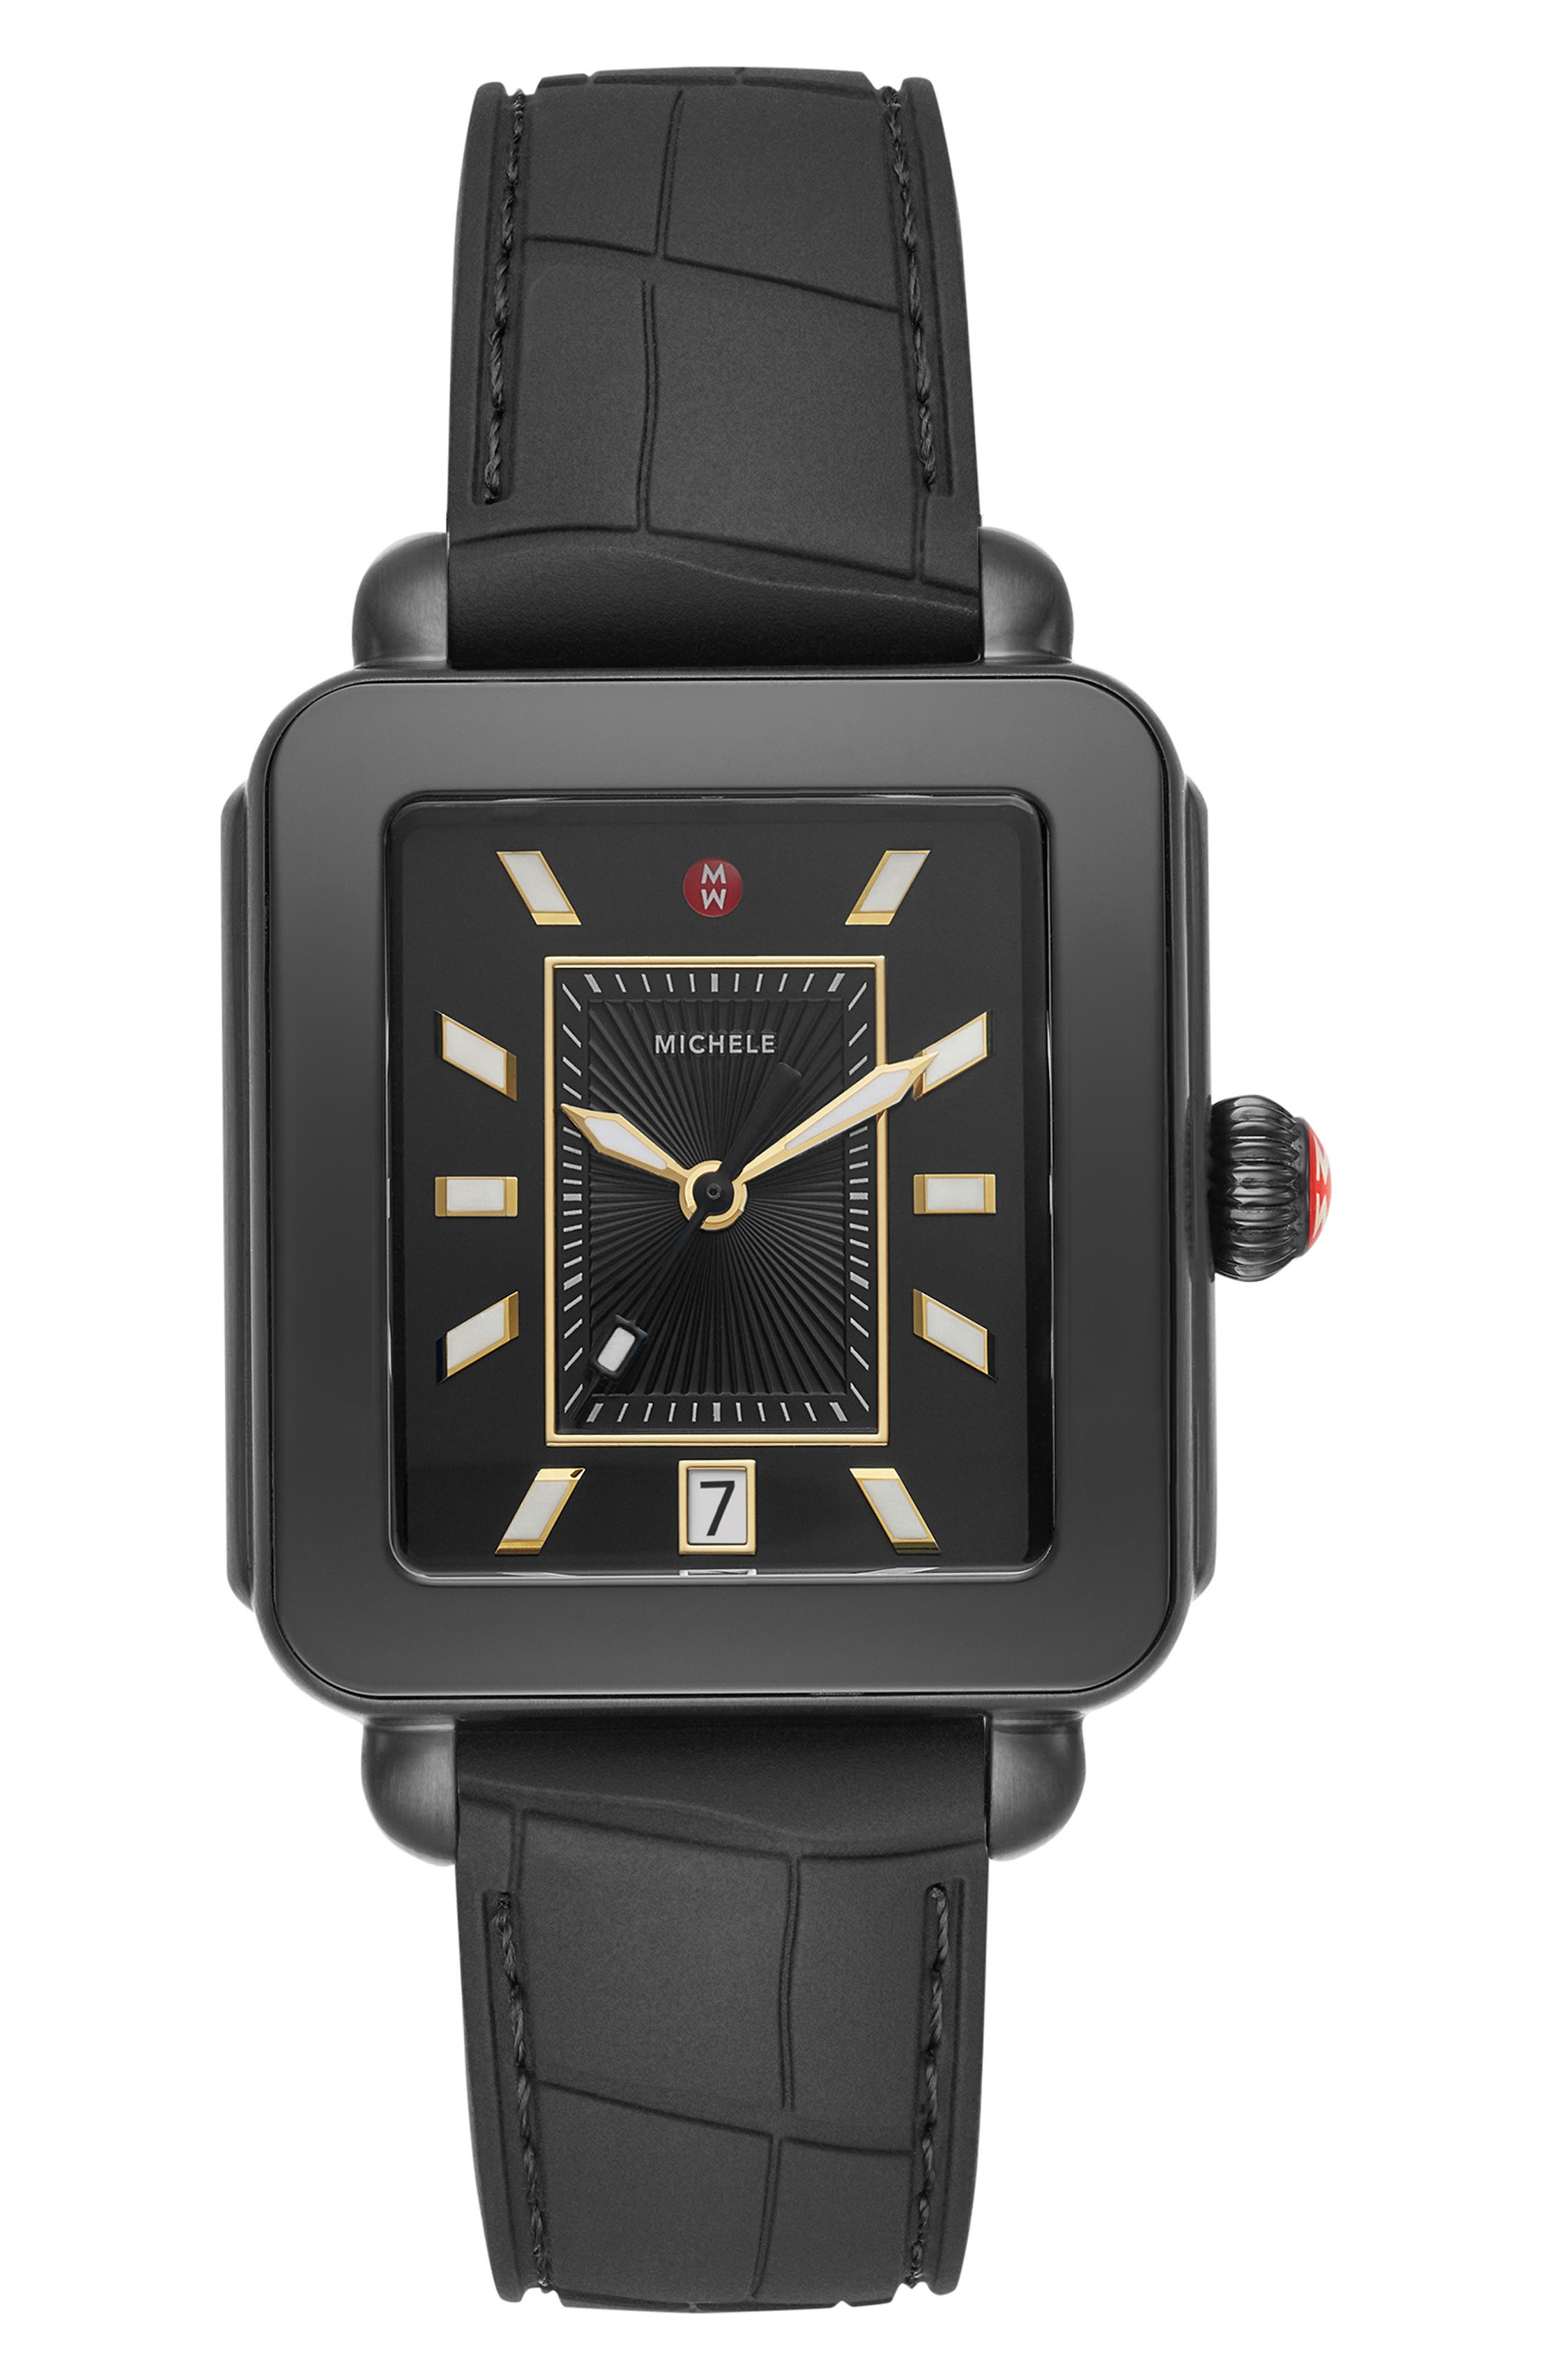 MICHELE Deco Sport Watch Head & Silicone Strap Watch, 34mm x 36mm, Main, color, BLACK/ GOLD/ BLACK